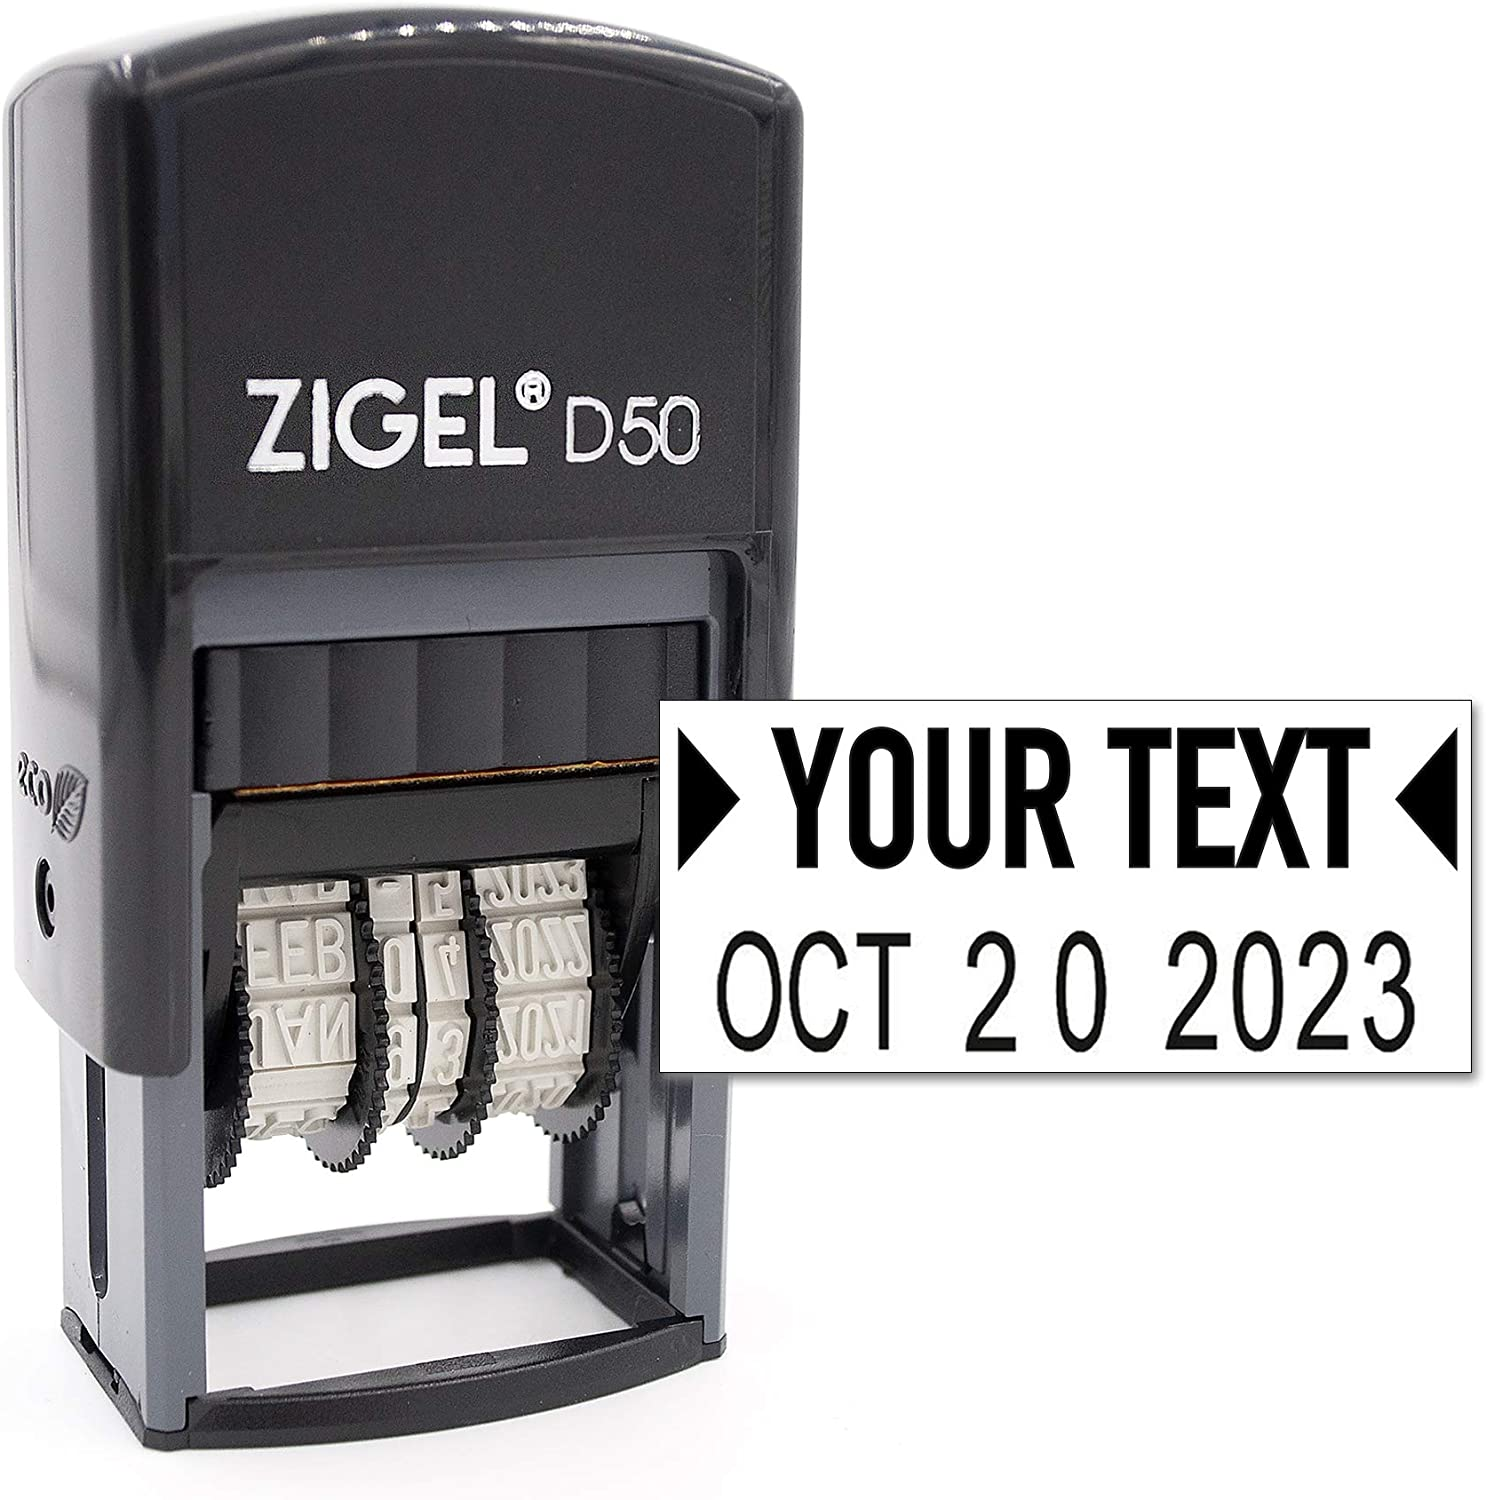 ZIGEL D50 Date Stamp with Your Custom Text - Self Inking Date Stamp - Black